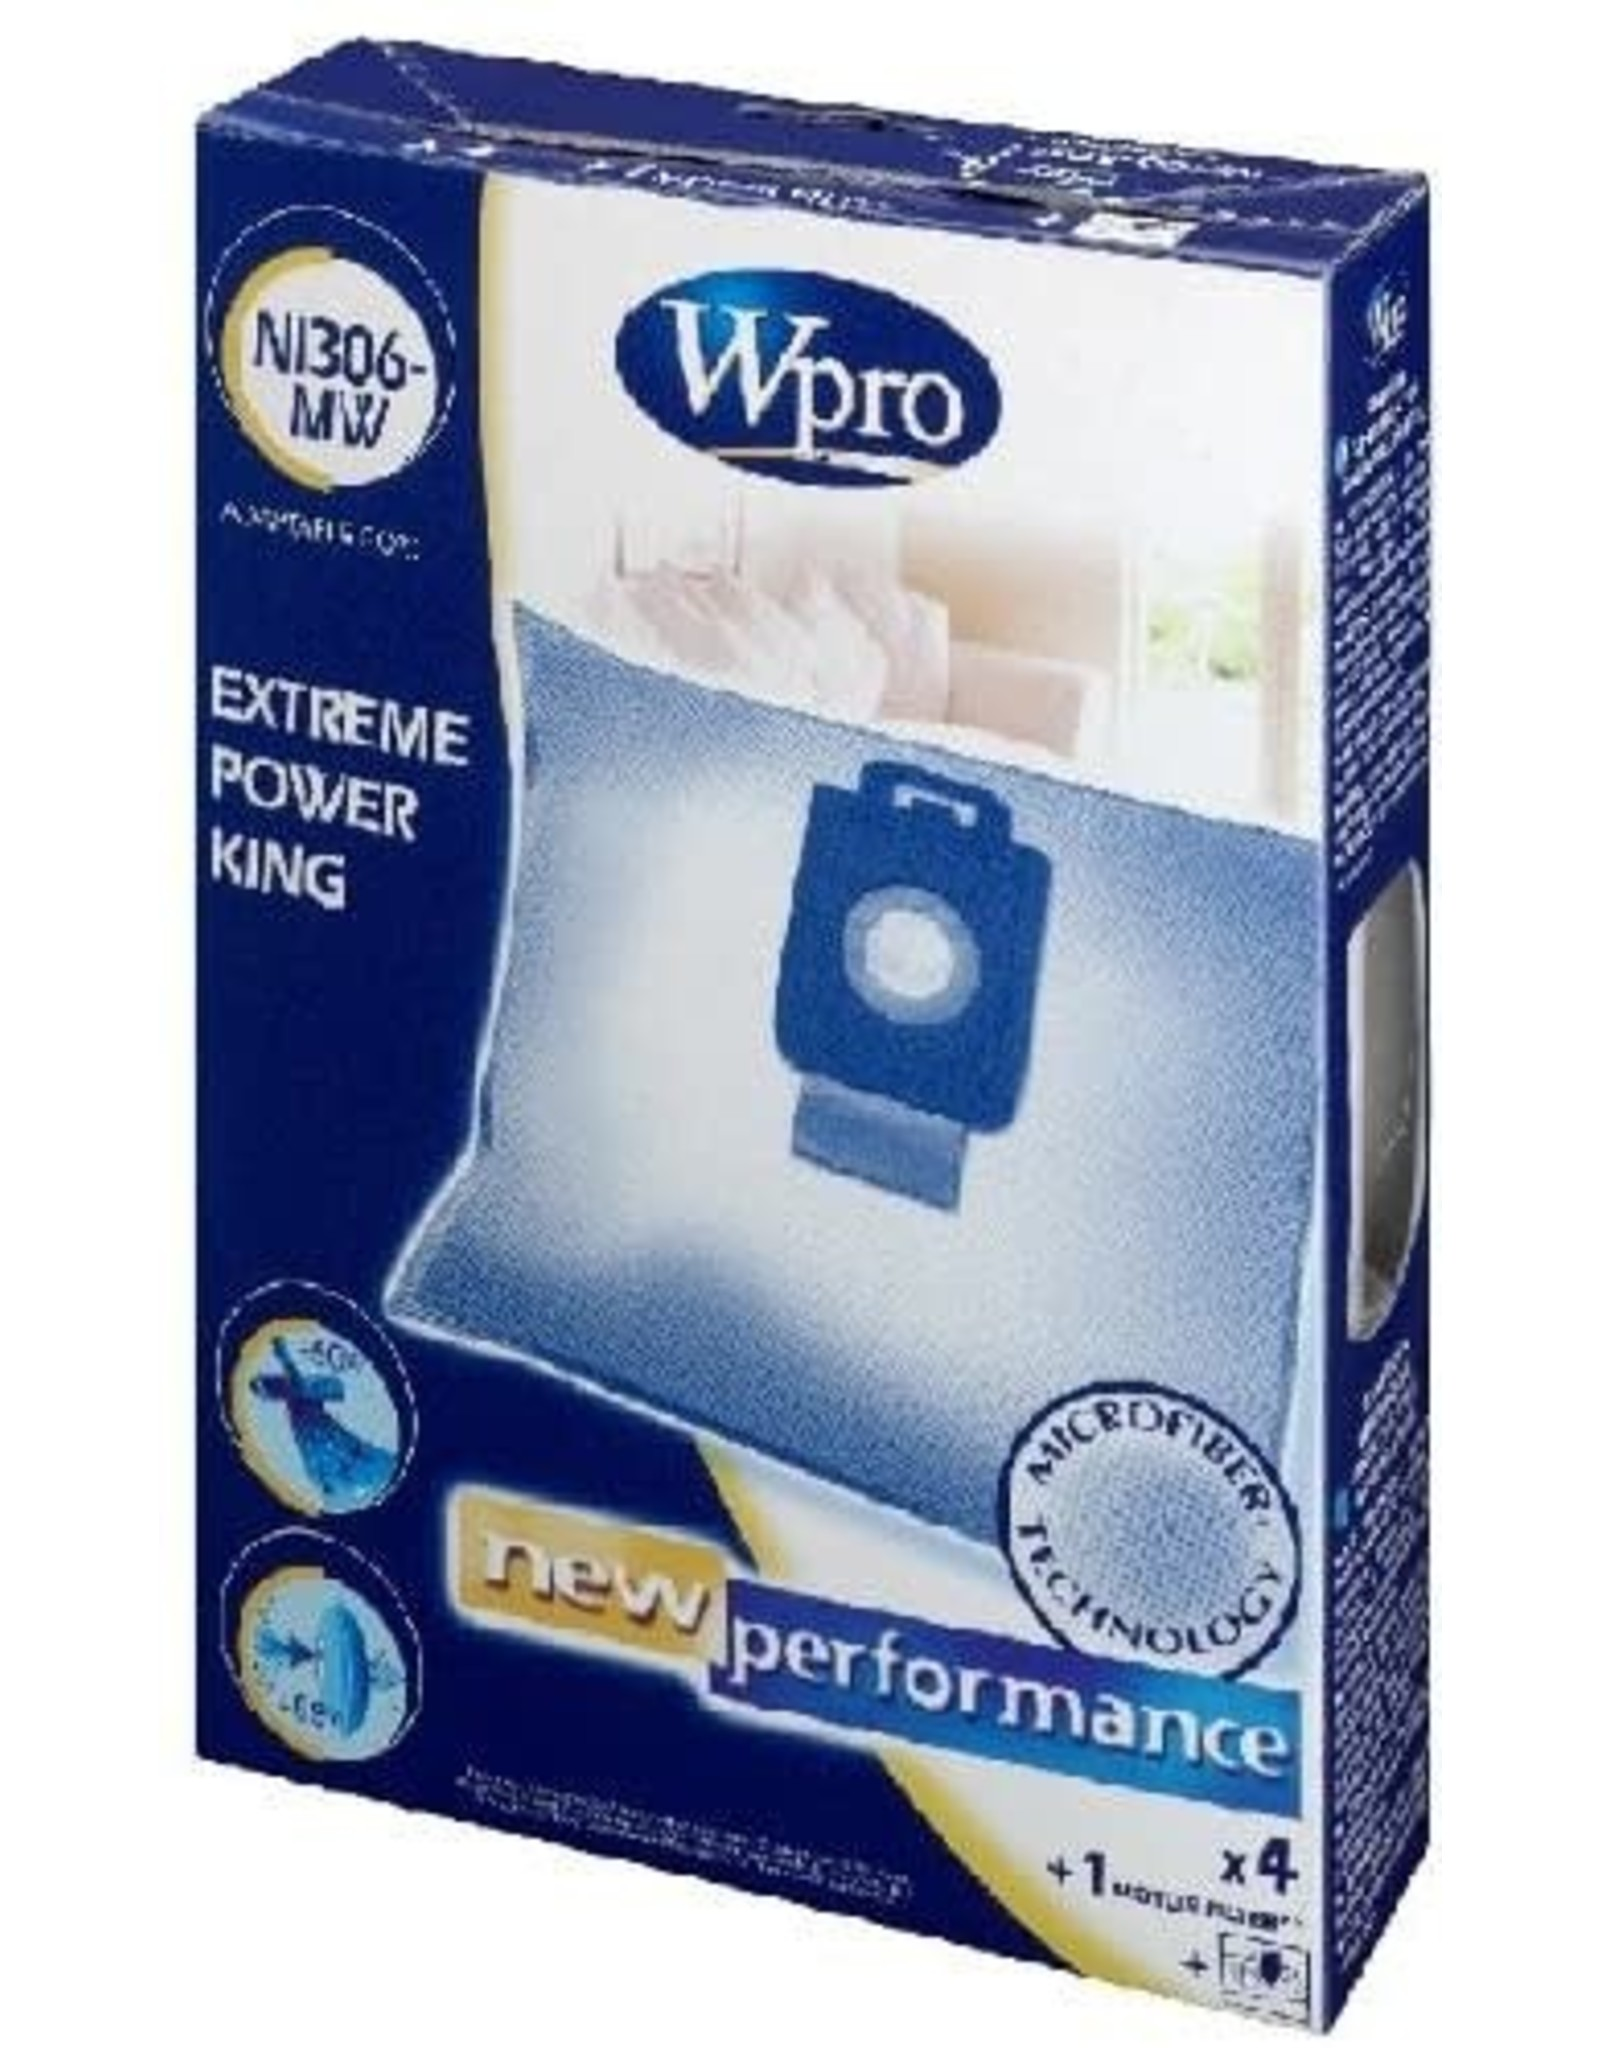 WPRO NI306MW NILFISK EXTREME/POWER/KING